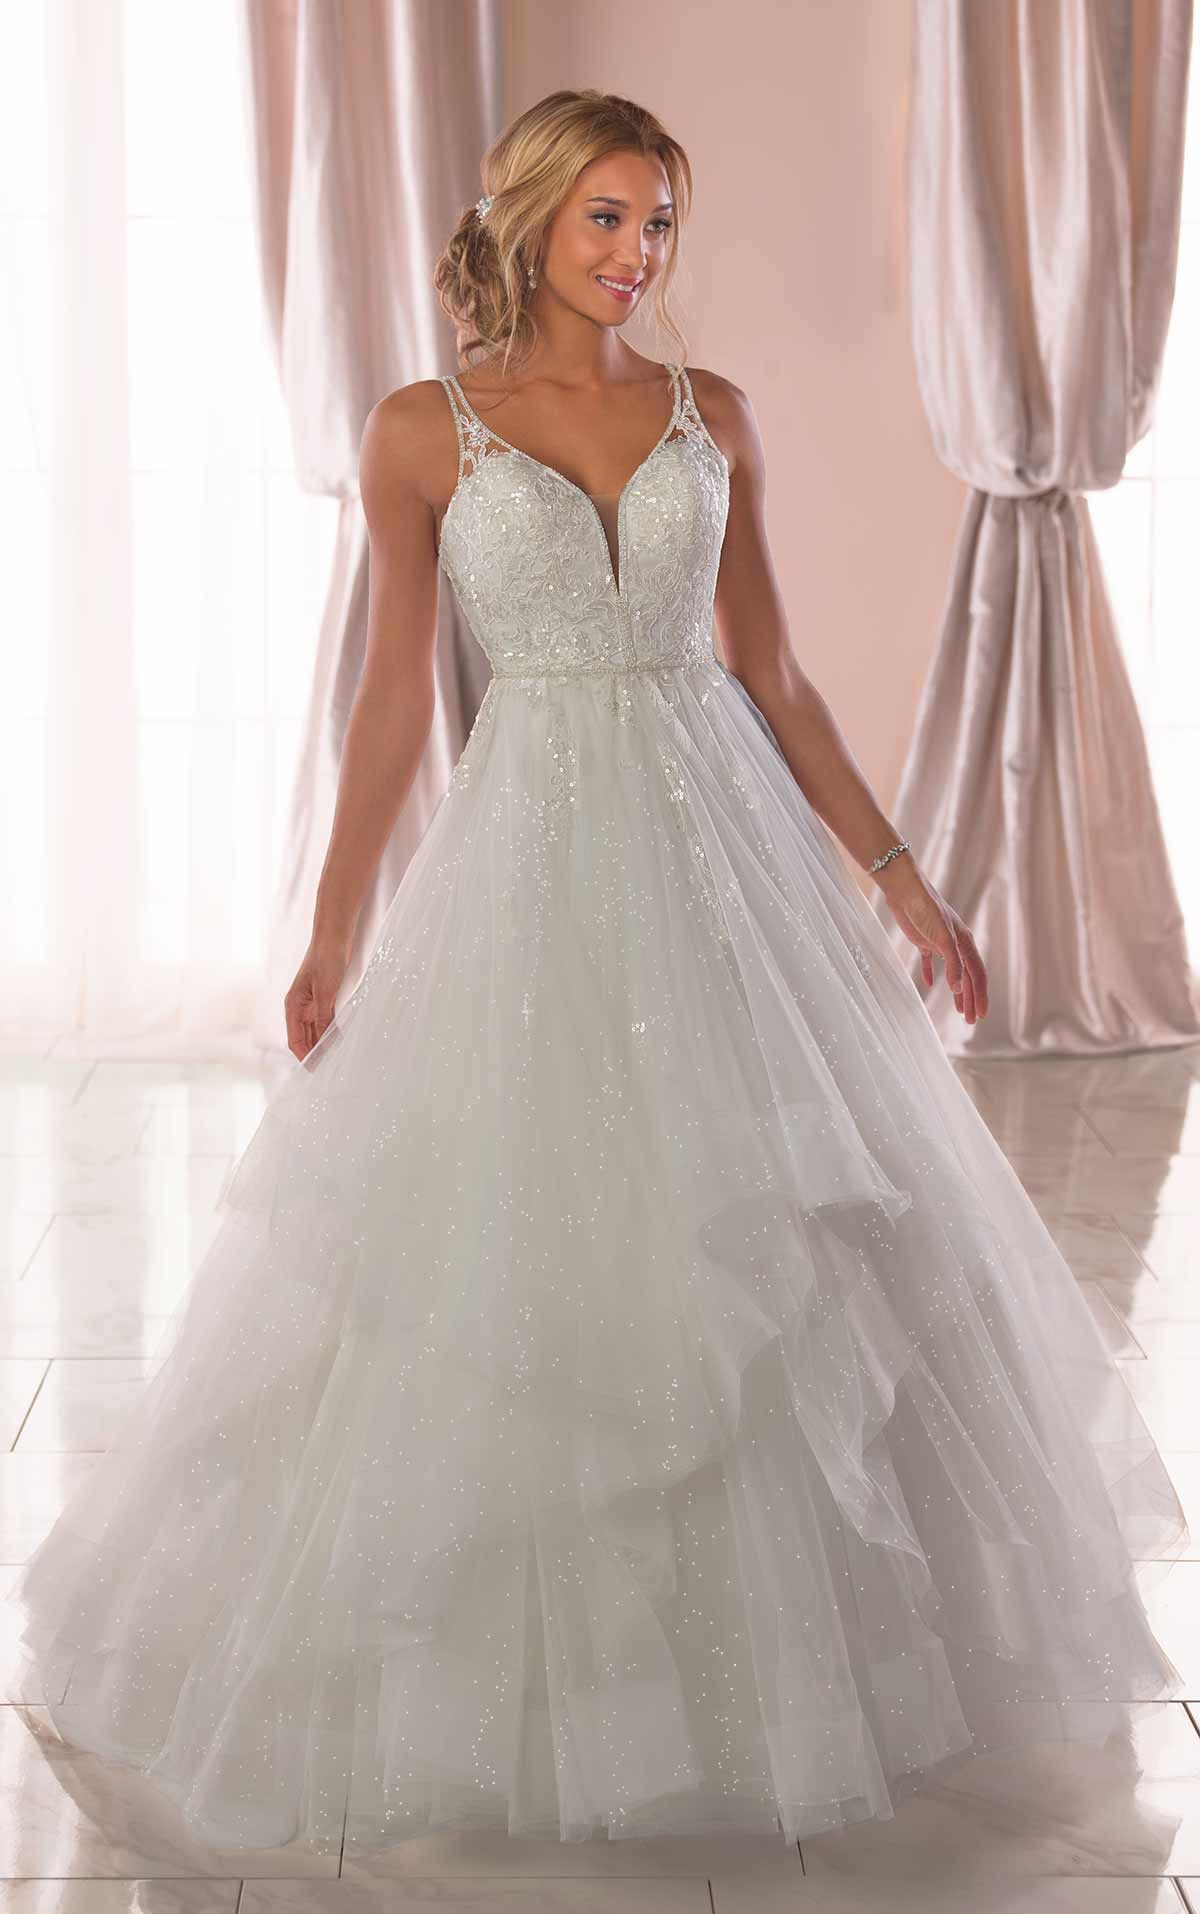 Strapless fitted lace wedding dresses  Lace bodice shimmer tulle wedding dress lace sparkle wedding